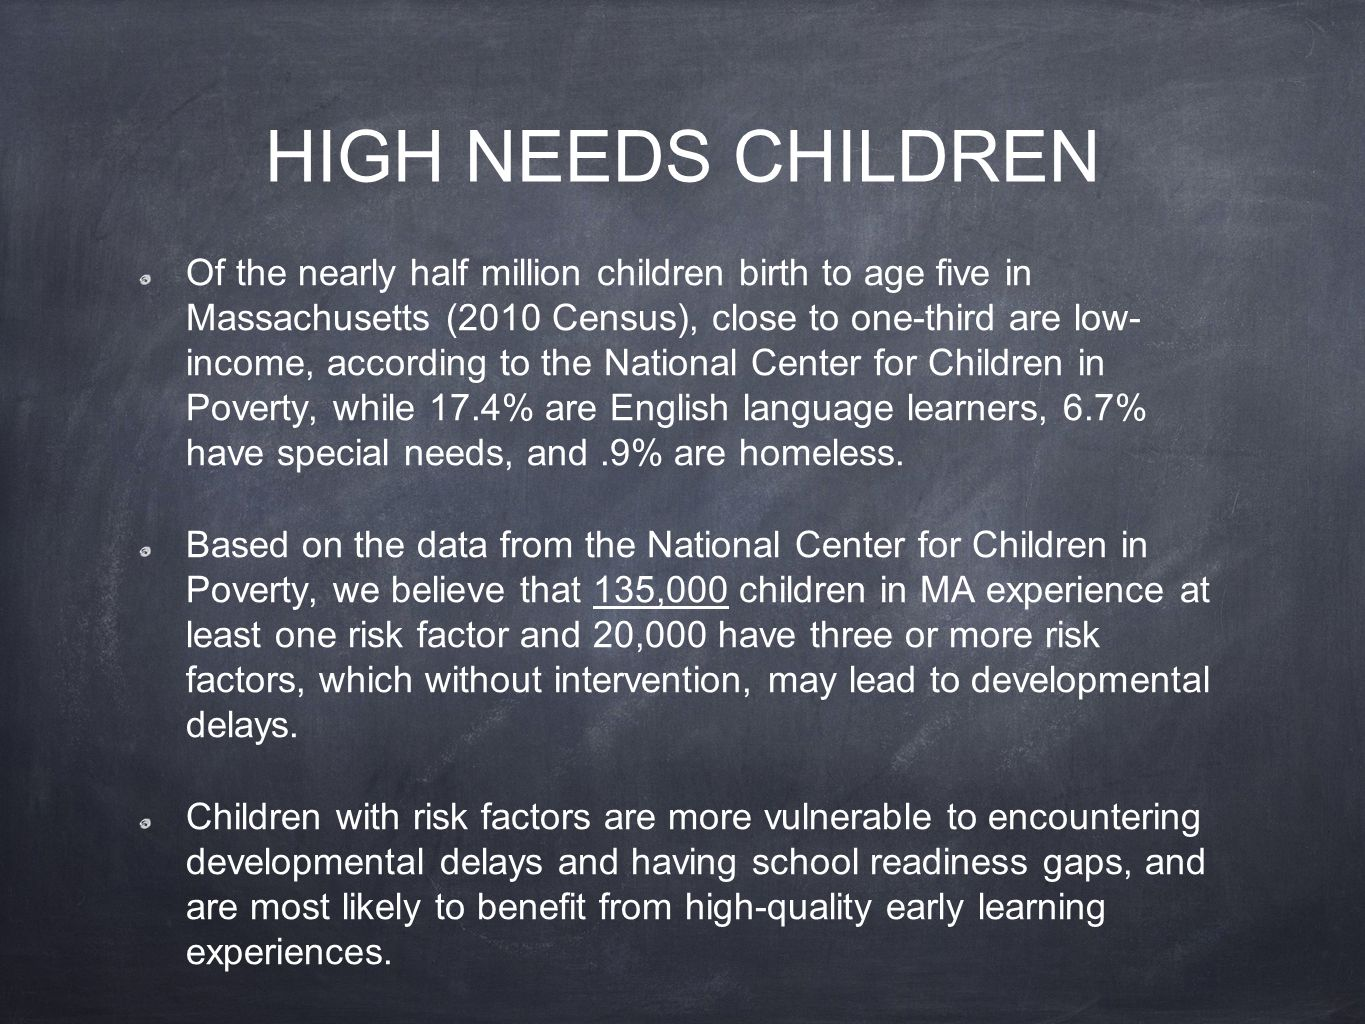 HIGH NEEDS CHILDREN Of the nearly half million children birth to age five in Massachusetts (2010 Census), close to one-third are low- income, according to the National Center for Children in Poverty, while 17.4% are English language learners, 6.7% have special needs, and.9% are homeless.